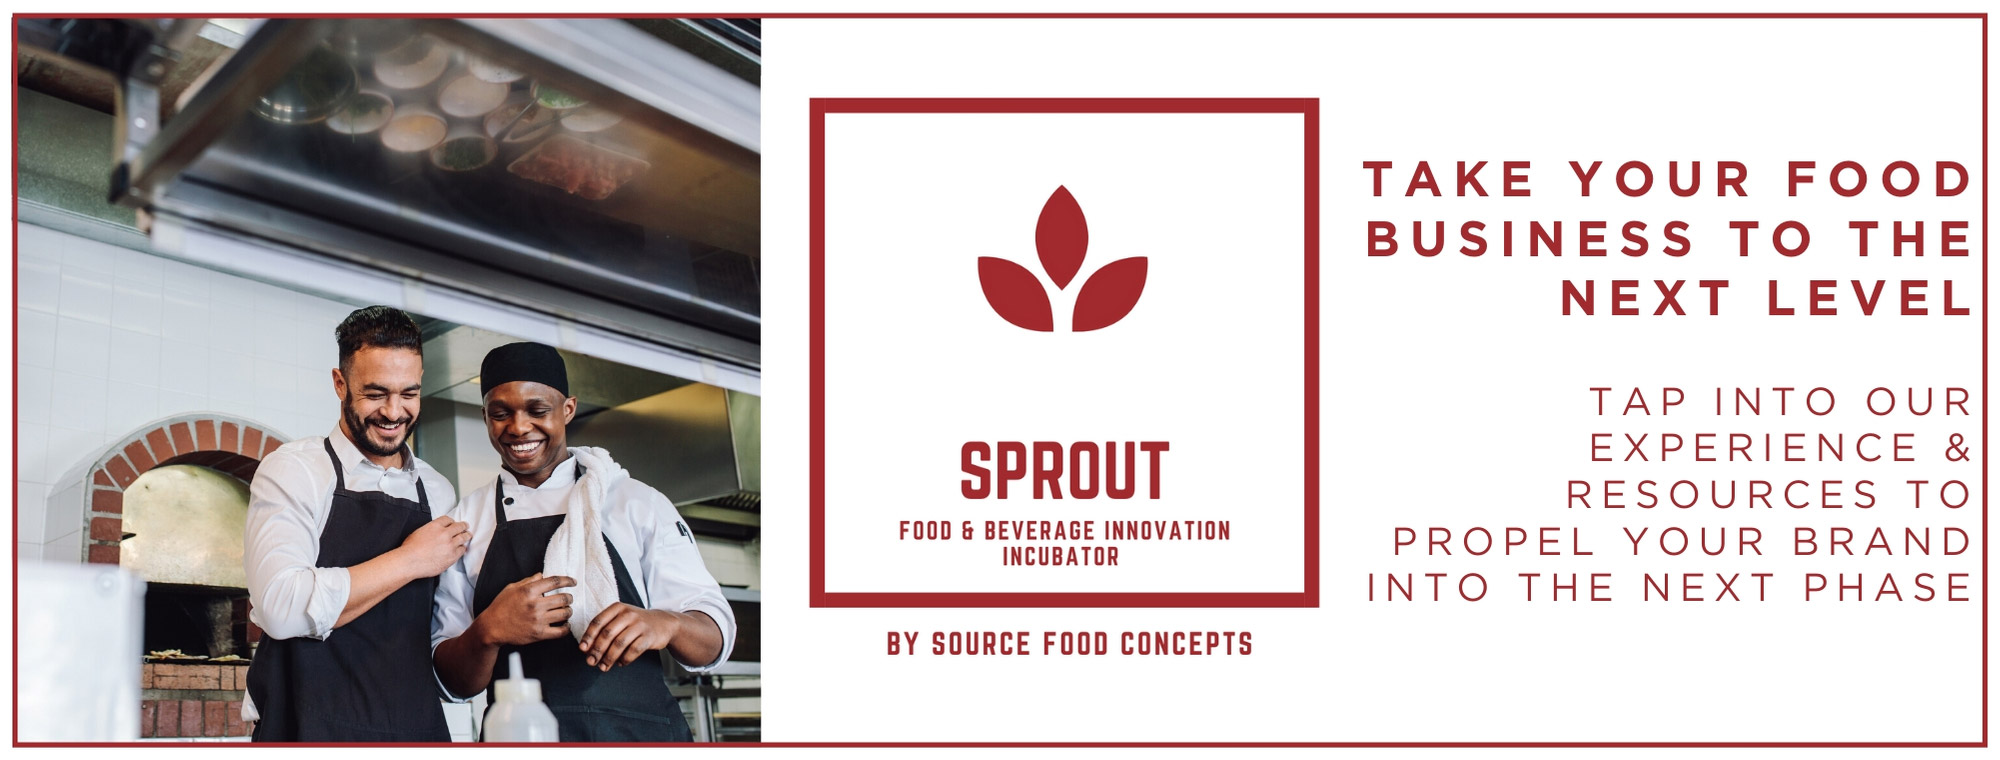 Sprout Innovation